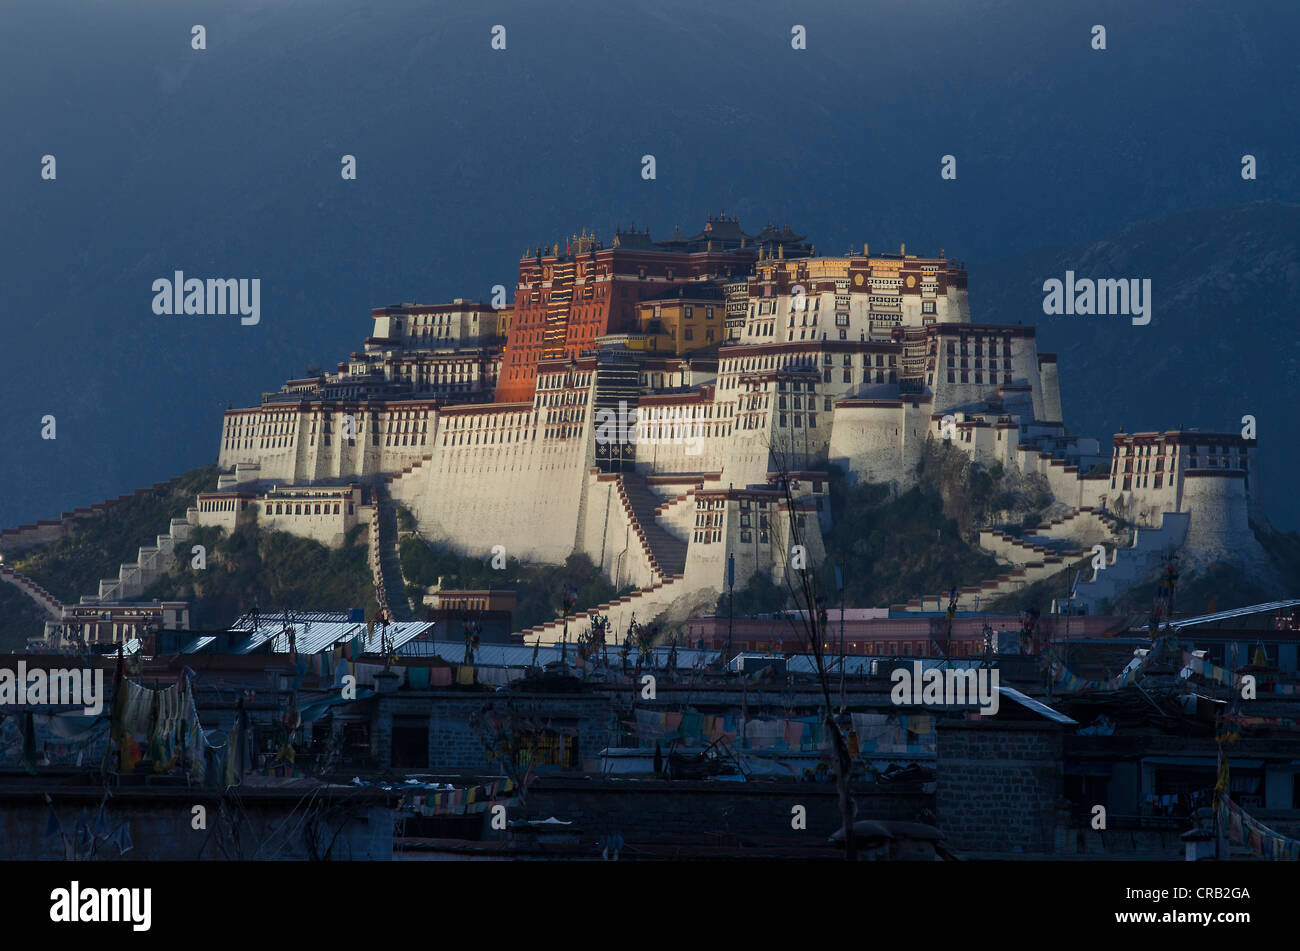 Potala Palace, winter palace of the Dalai Llama, above the roofs of the historic Tibetan district in Lhasa, Tibet, - Stock Image